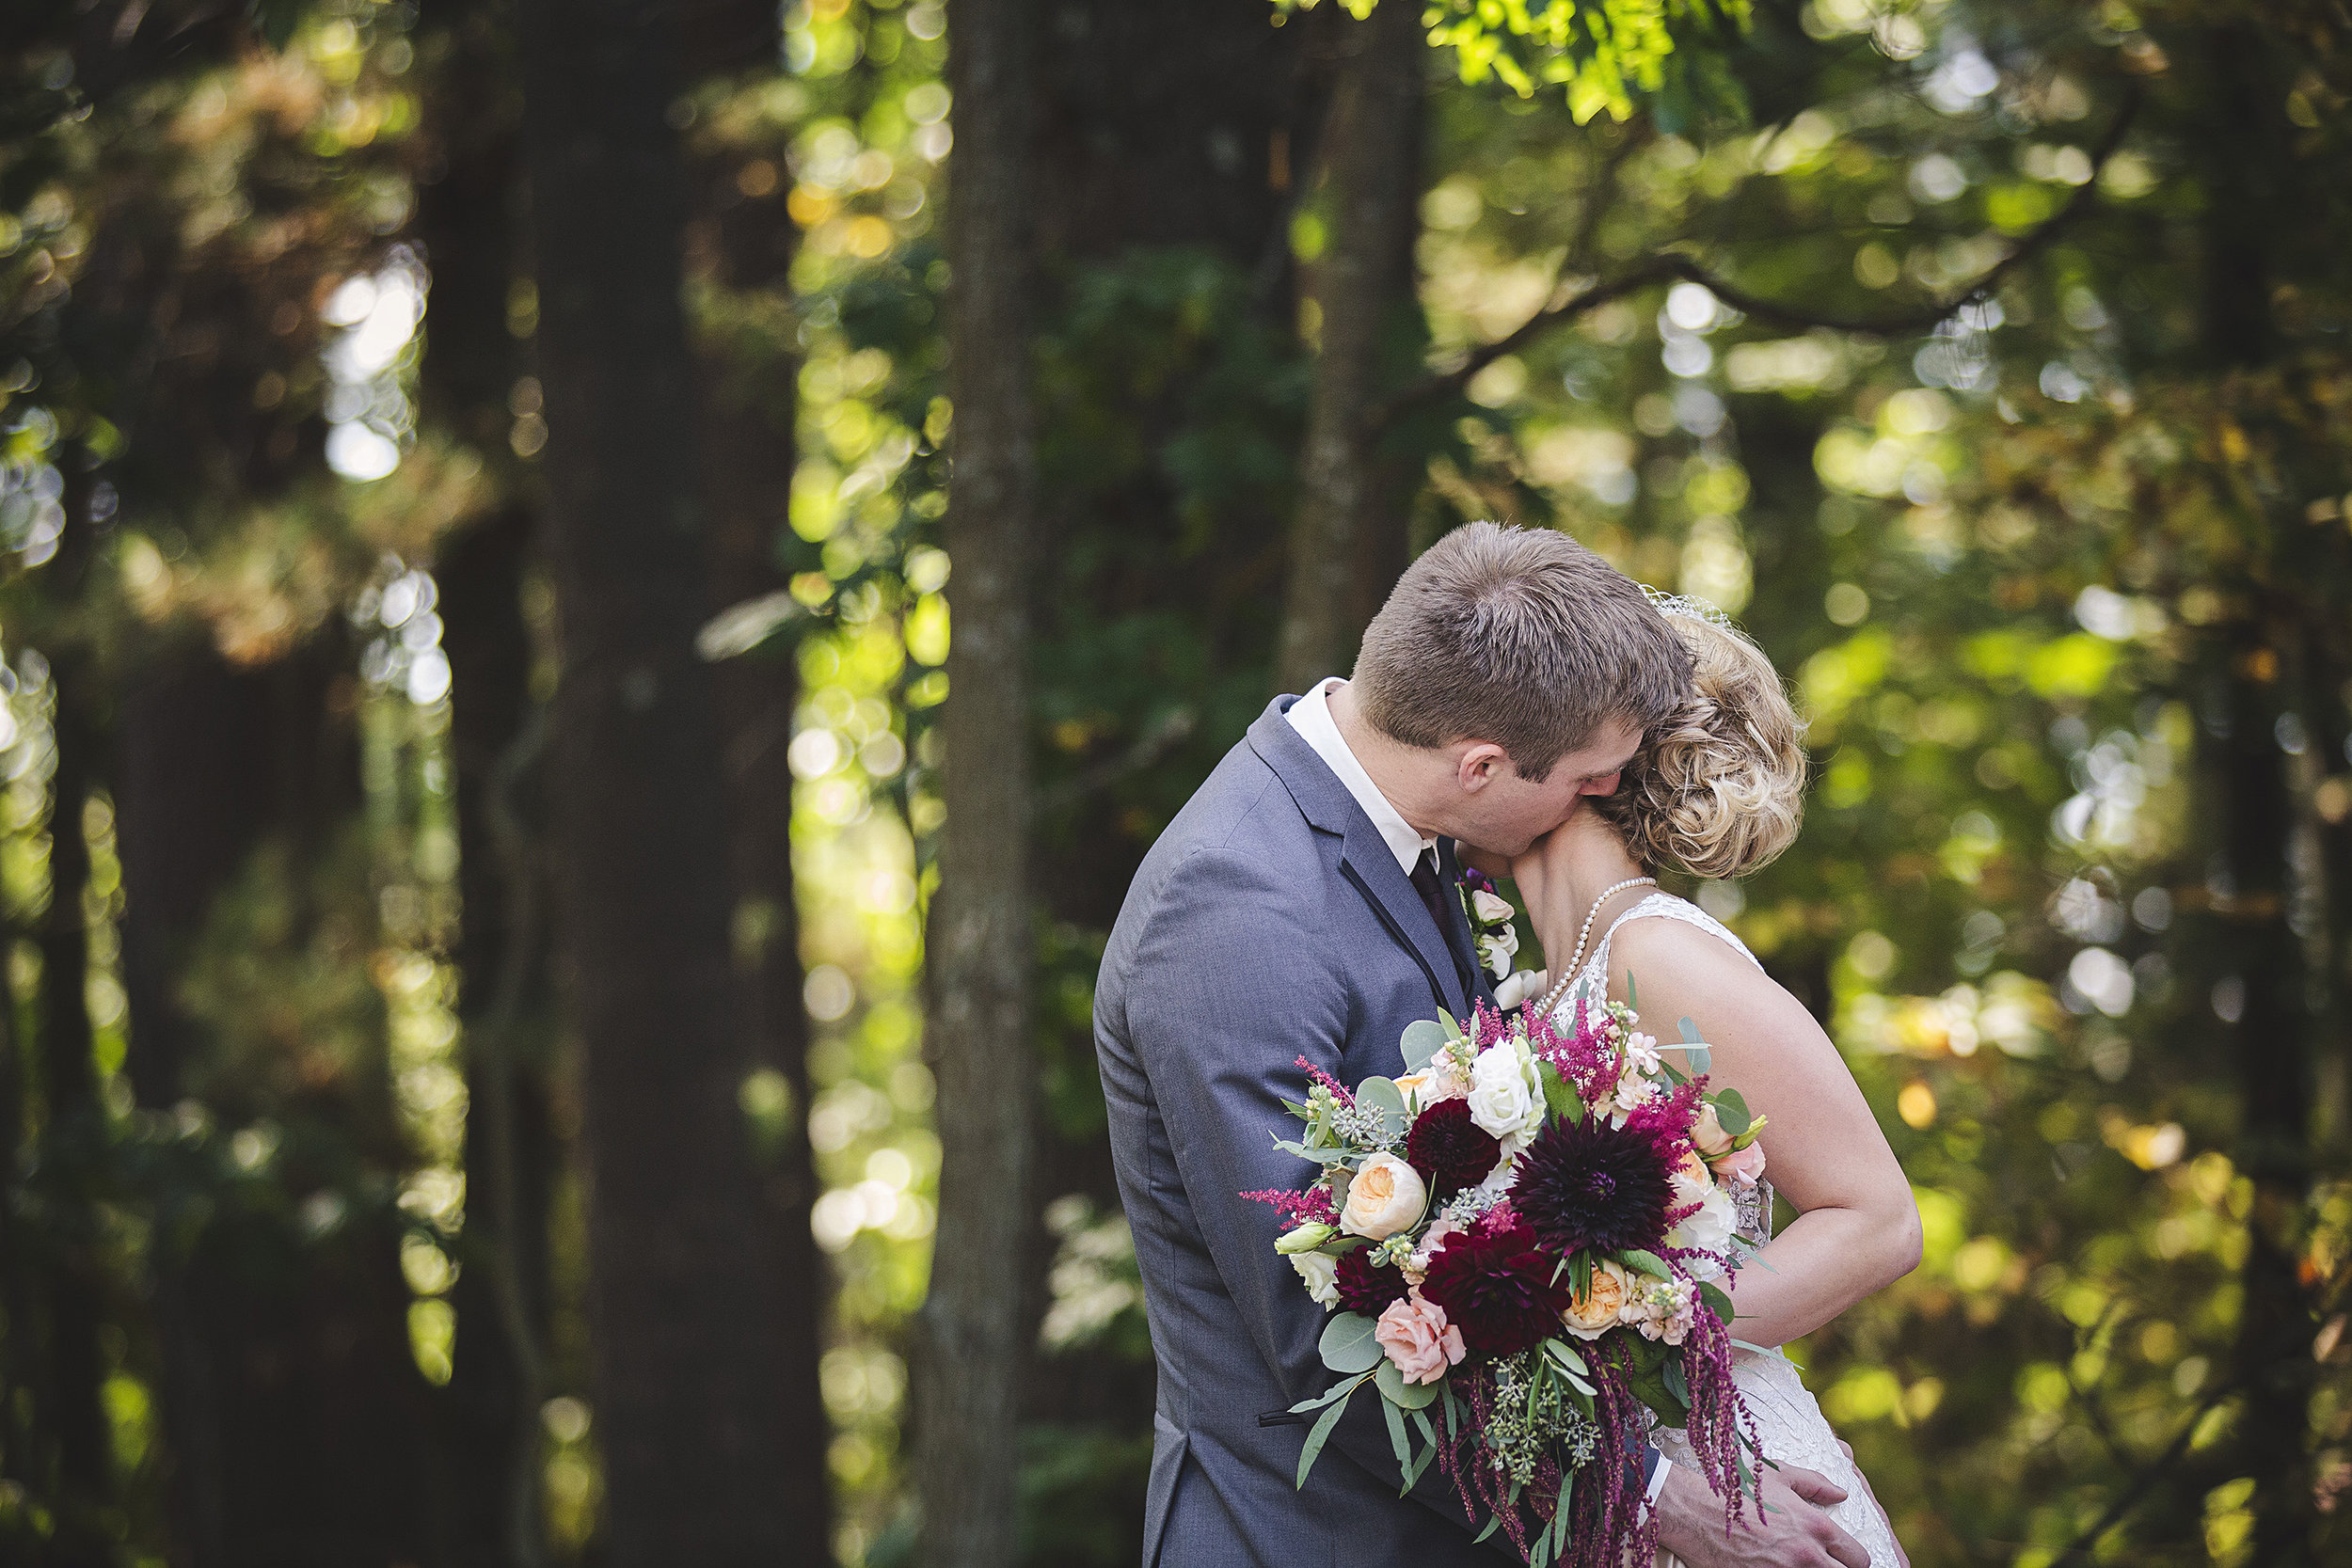 first look wedding kiss wedding planning day of coordinator event designer wisconsin dells wi